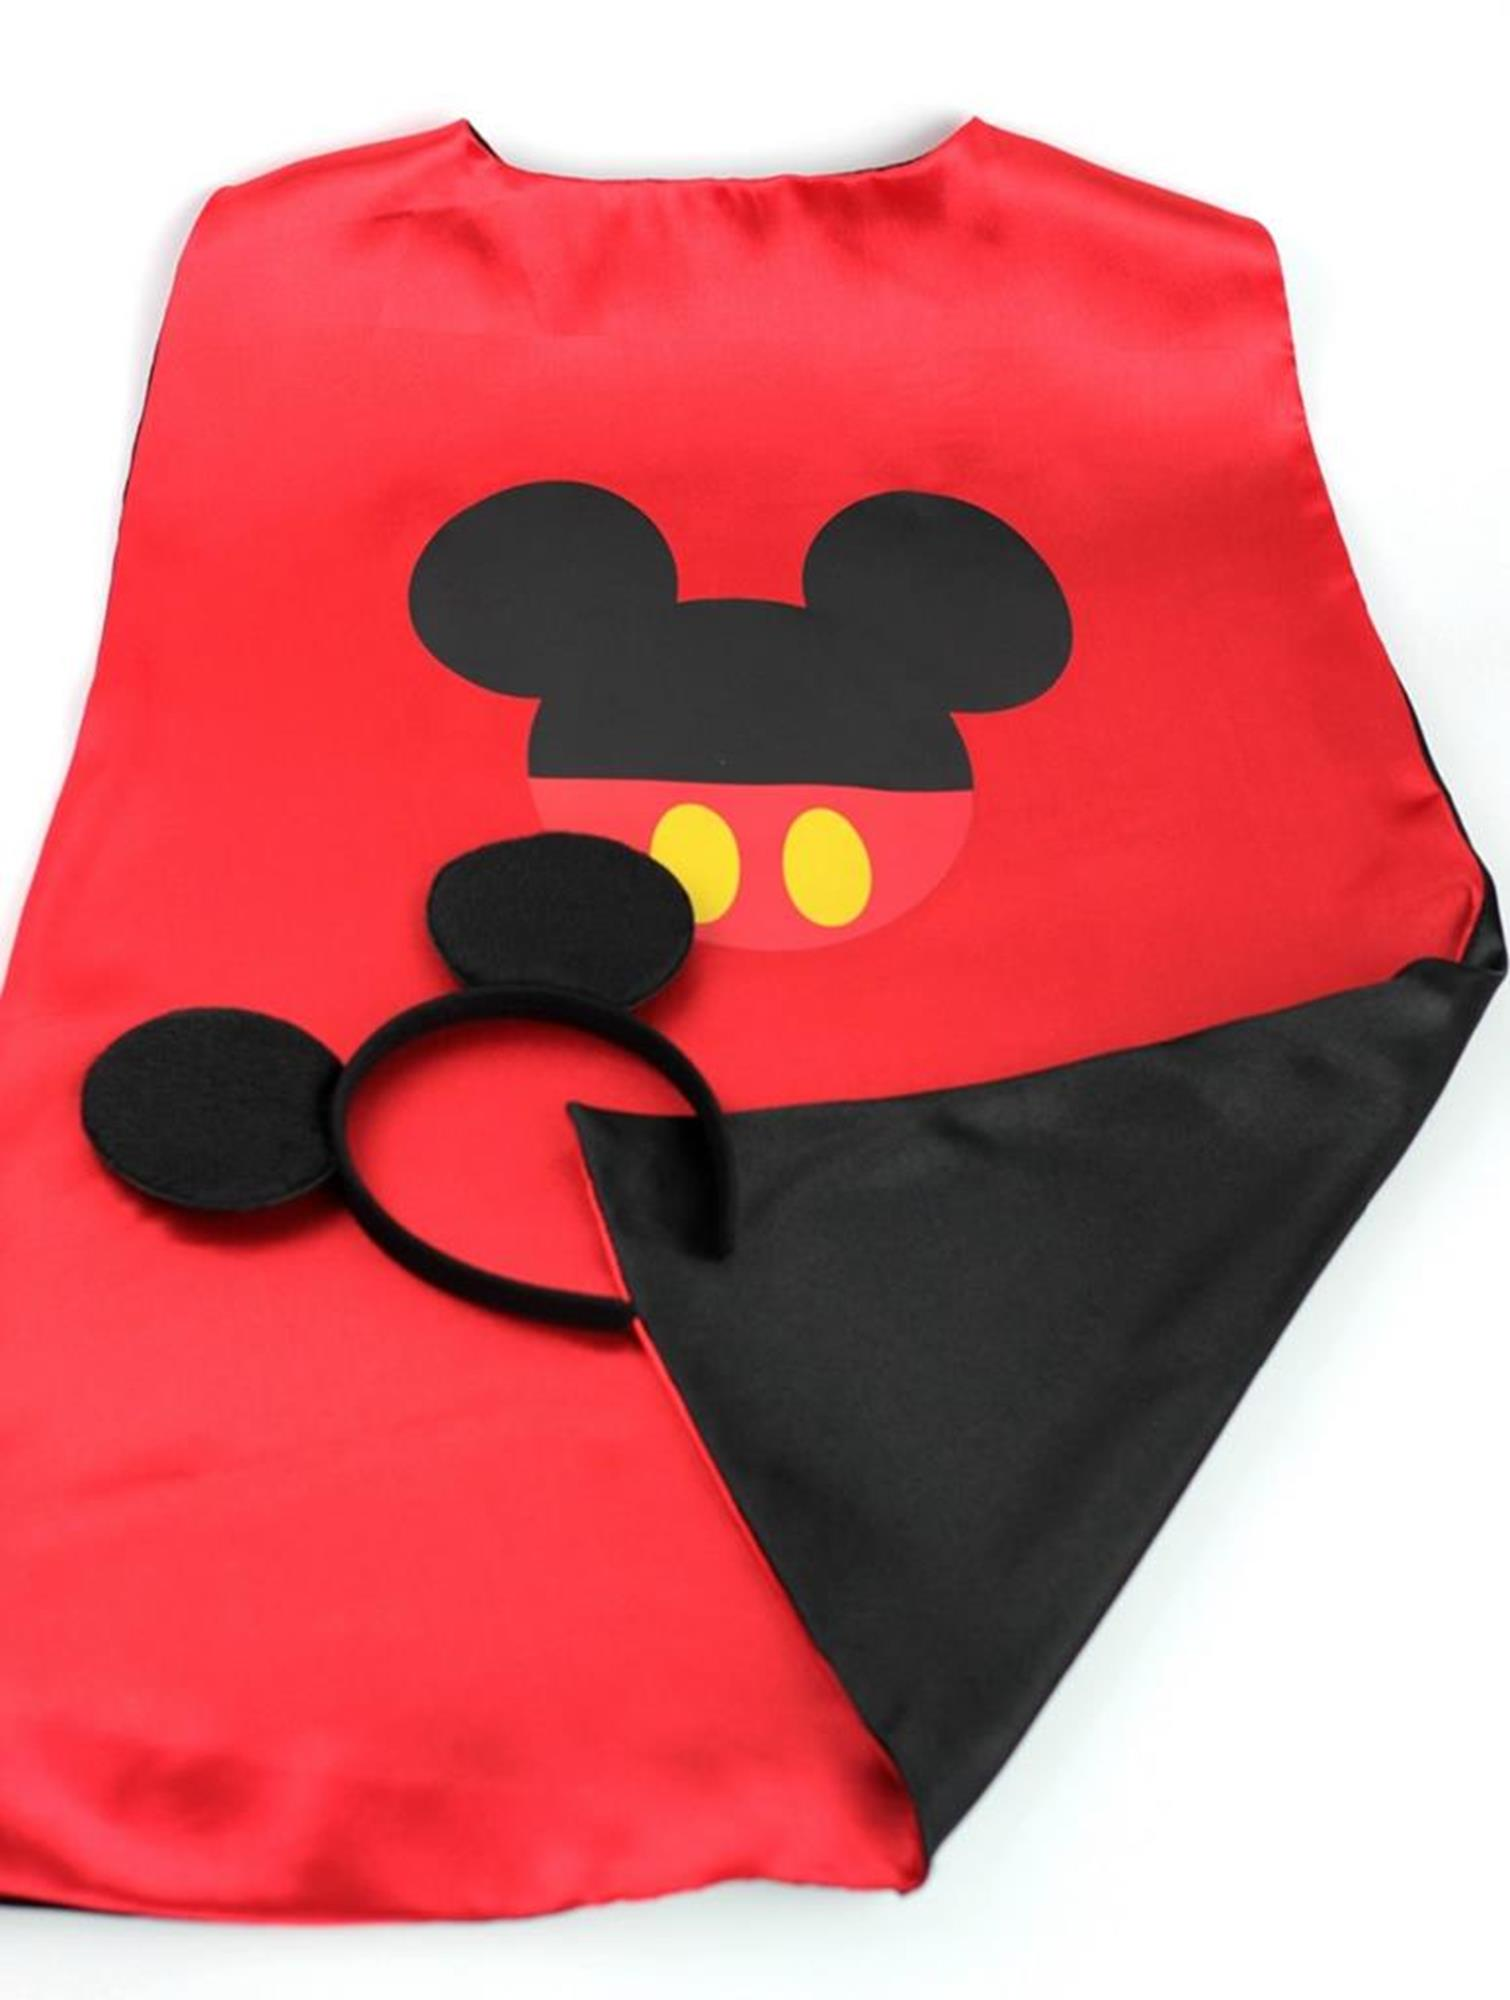 Cartoon Costume Mickey Mouse Logo Cape and Mask with Gift Box by Superheroes by